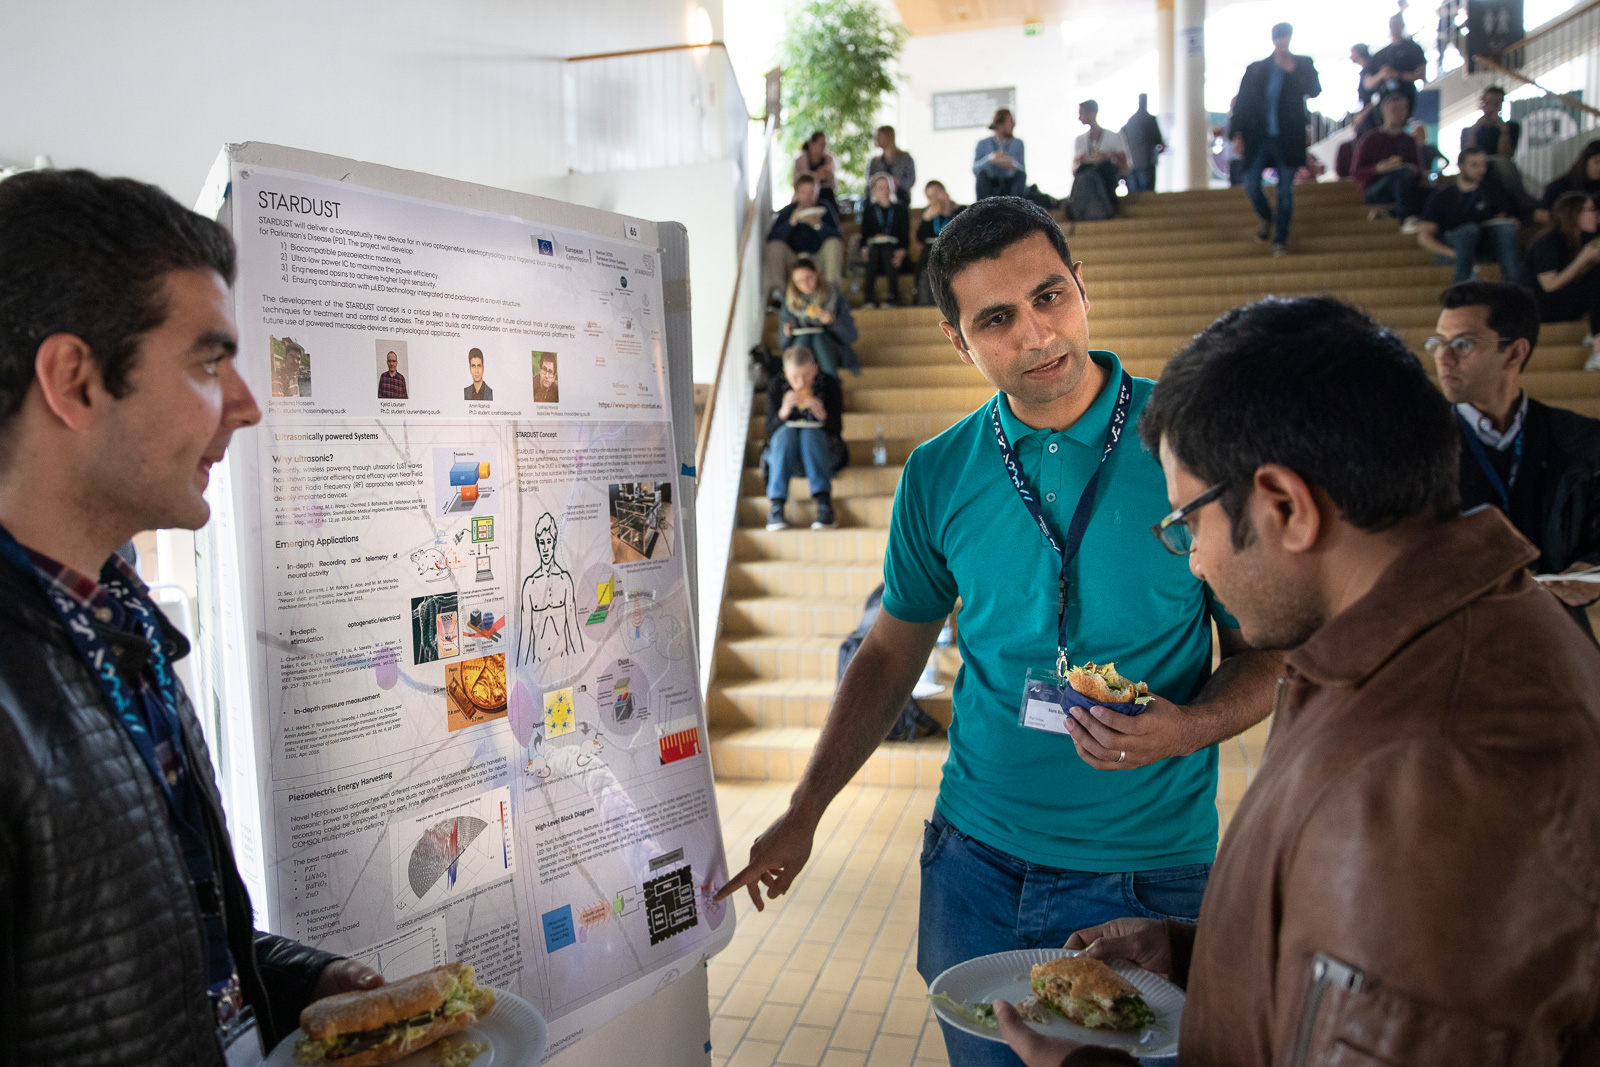 PhD students  Seyedsina Hosseini & Amin Rashidi from Aarhus University presenting the project STARDUST at the Neuroscience Day.